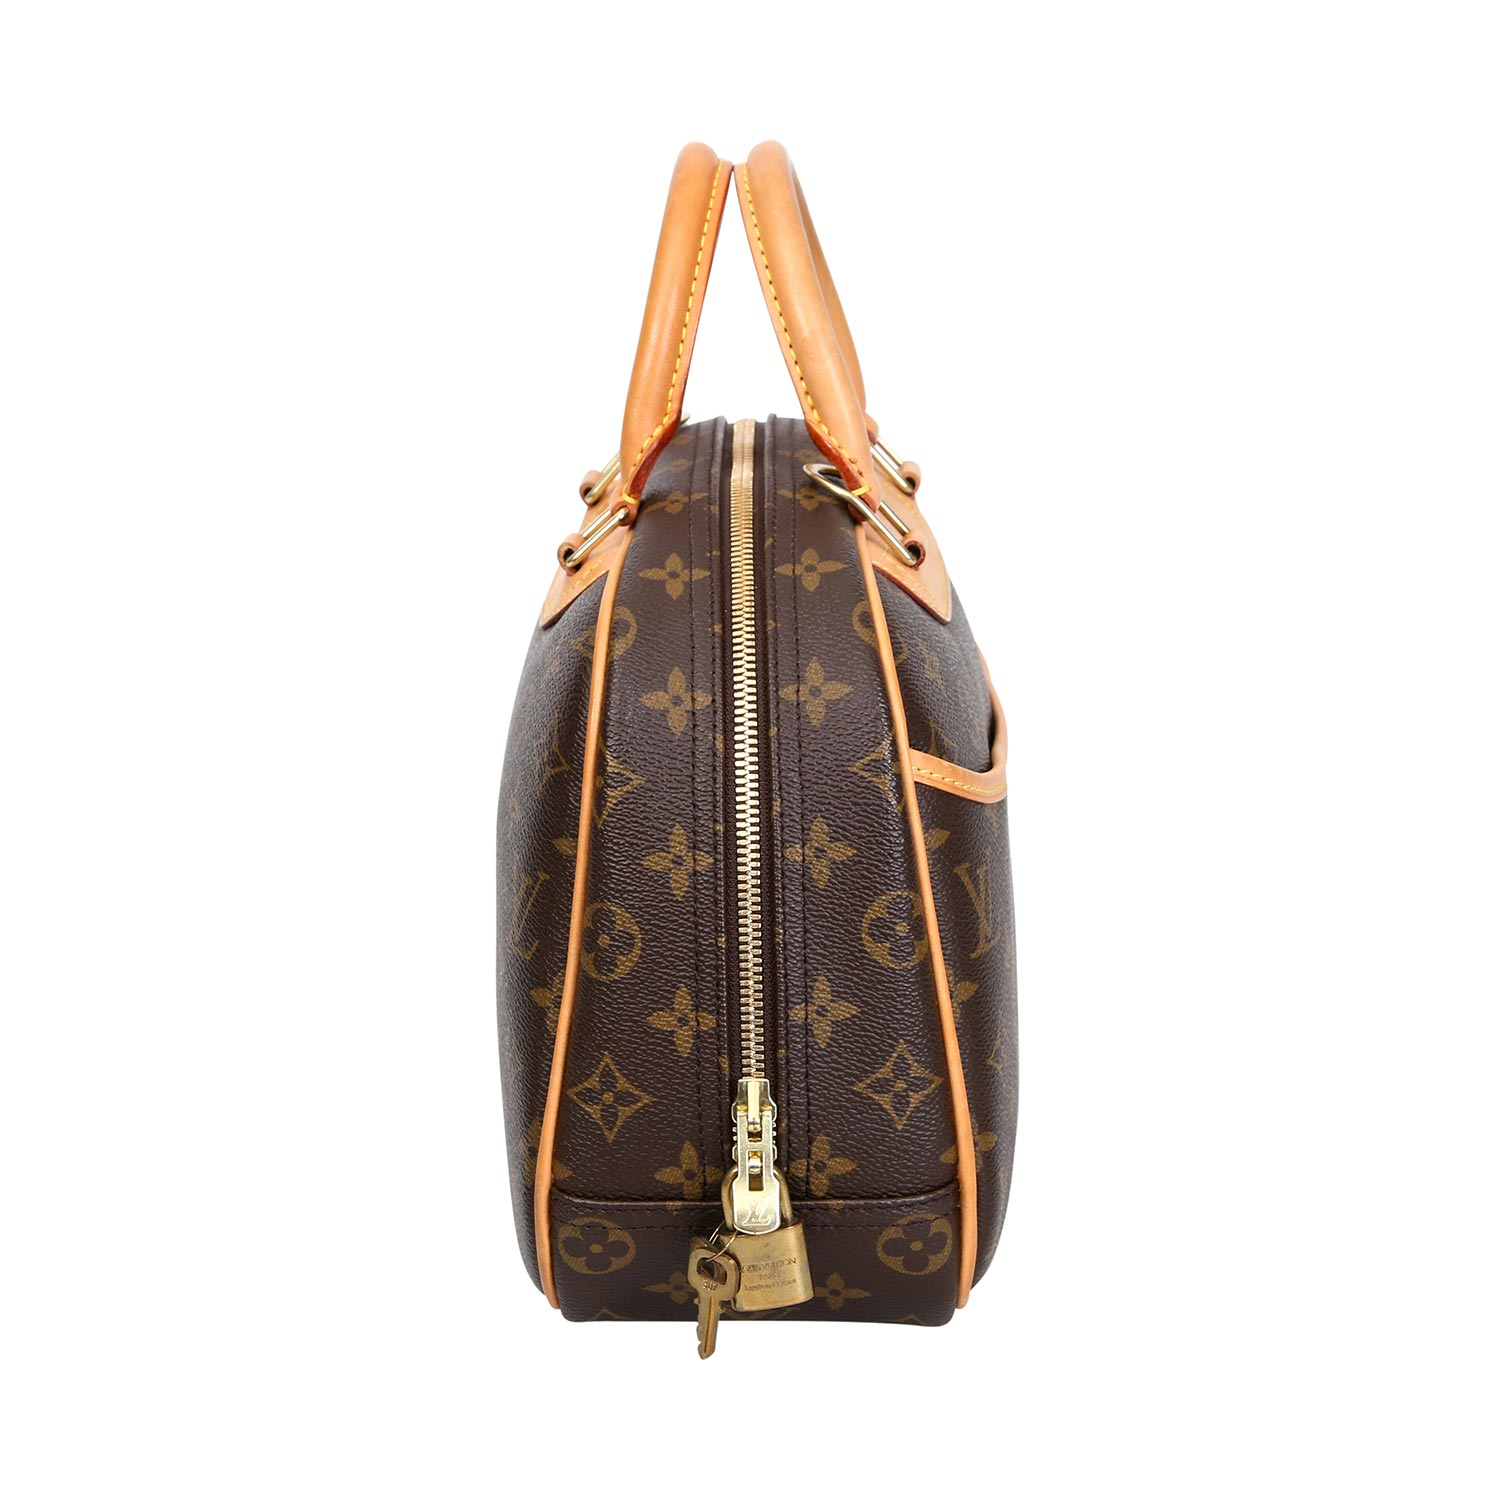 "Lot 11 - LOUIS VUITTON Henkeltasche ""TROUVILLE"", Koll.: 2005.Monogram Canvas Serie, als Kosmetik-Tasche"